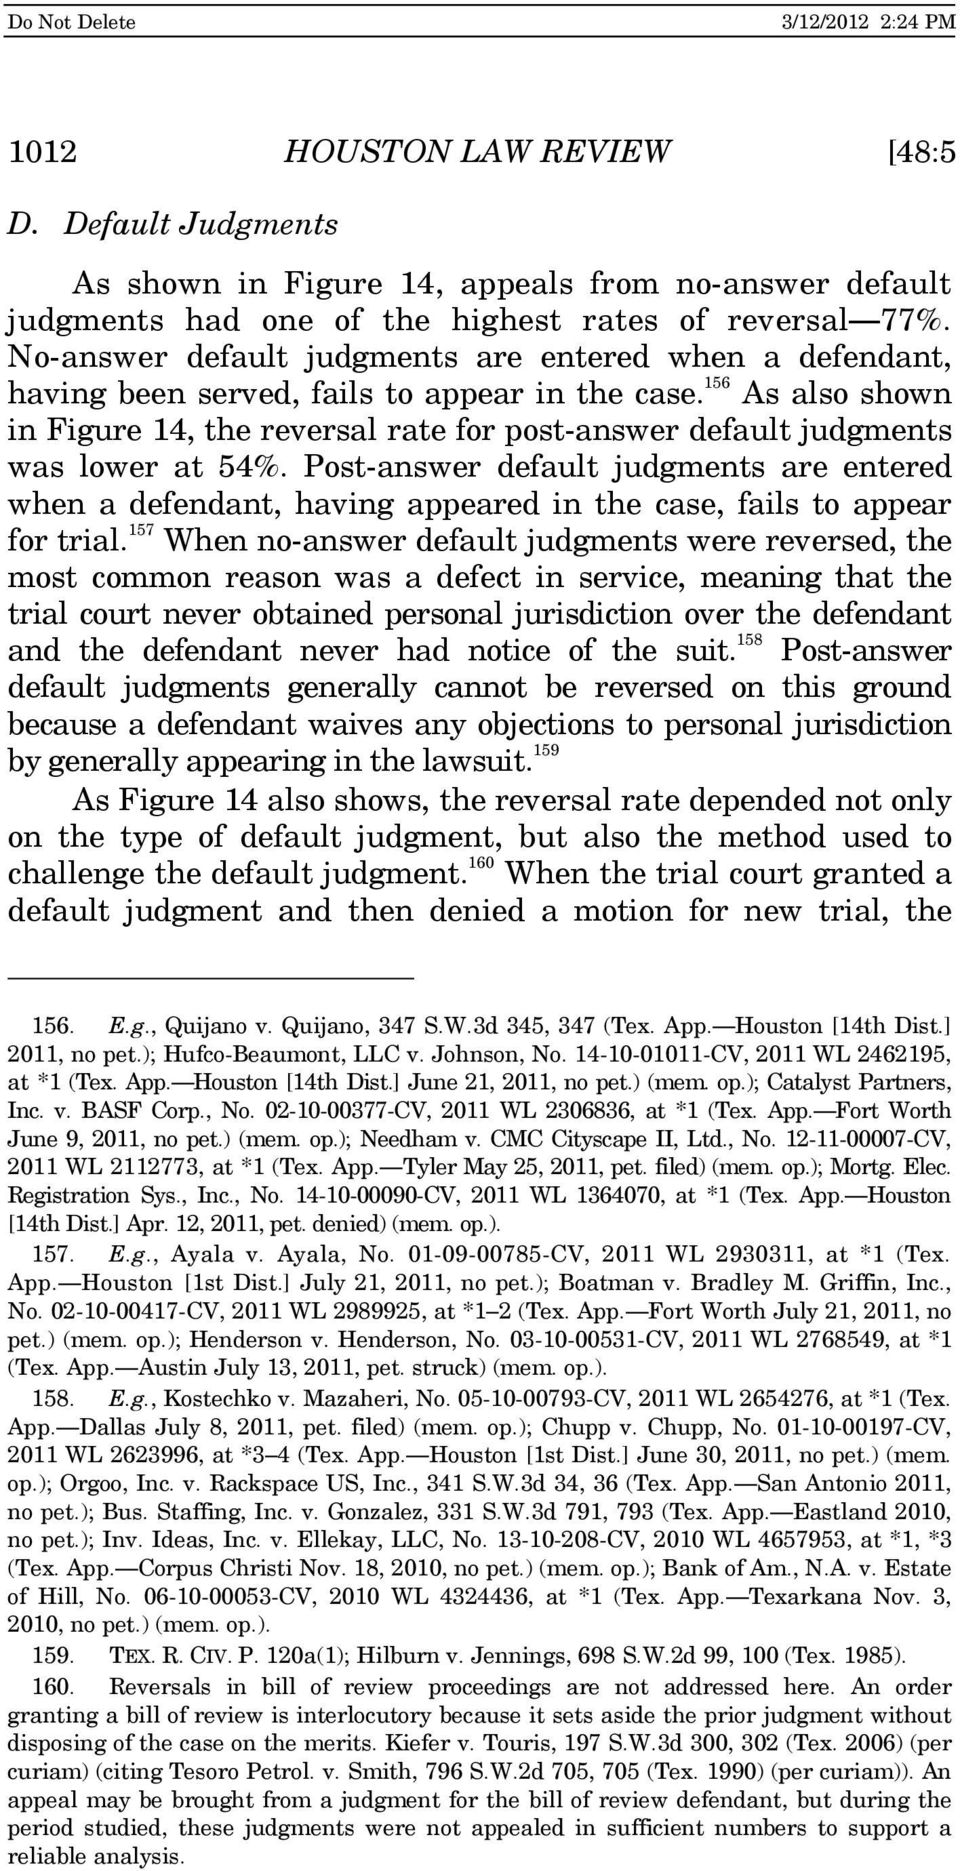 156 As also shown in Figure 14, the reversal rate for post-answer default judgments was lower at 54%.